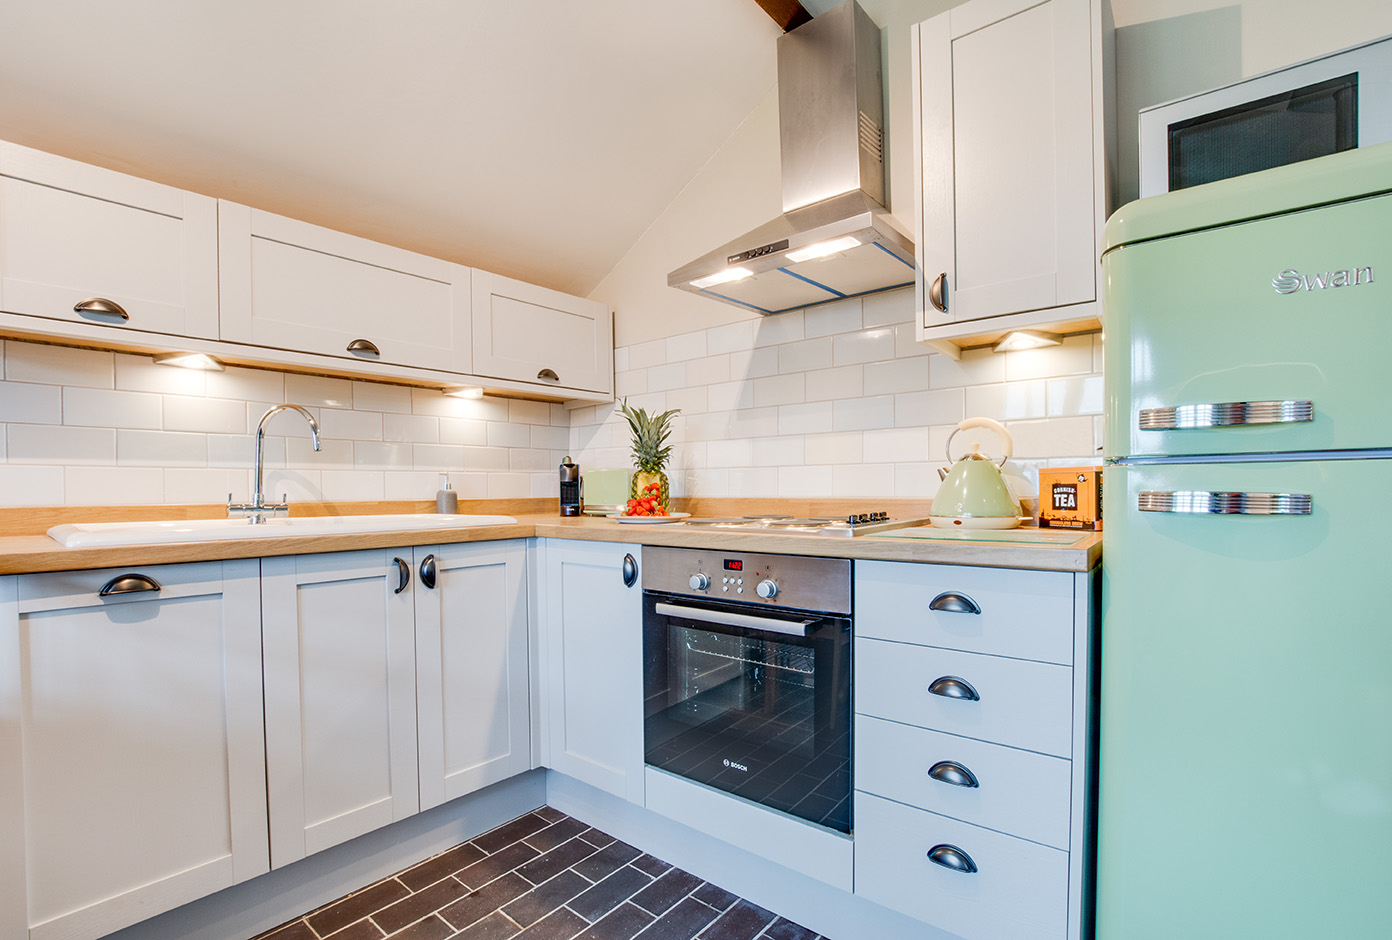 The kitchen area of Snappers luxury self catering converted barn holiday cottage at Penrose Burden in North Cornwall 02.jpg